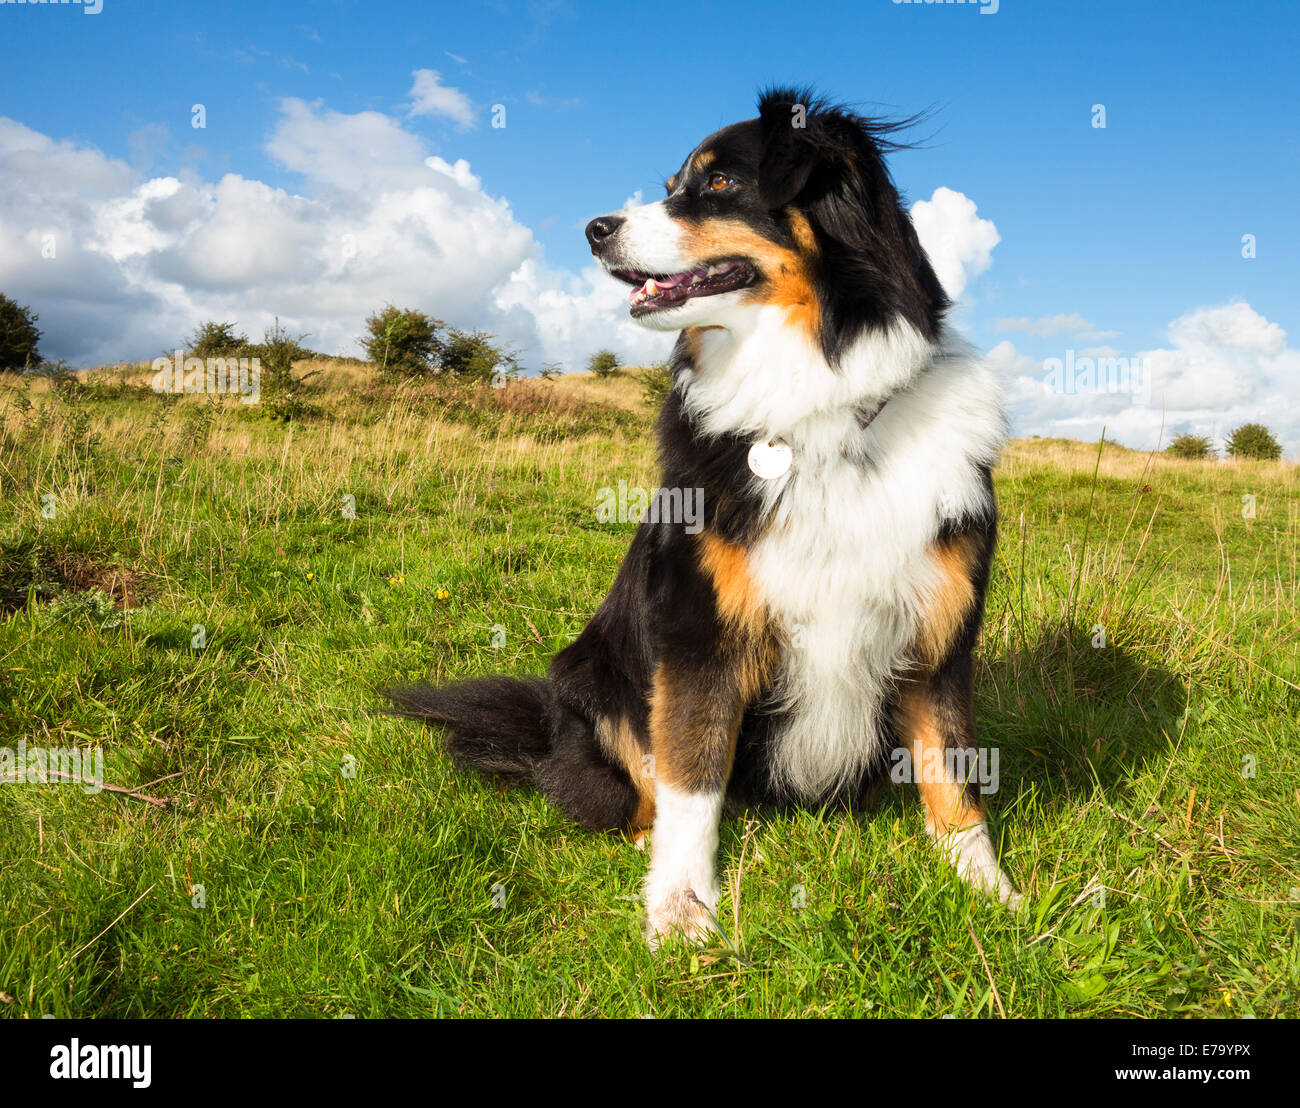 Adult Dogs For Sale Inwales